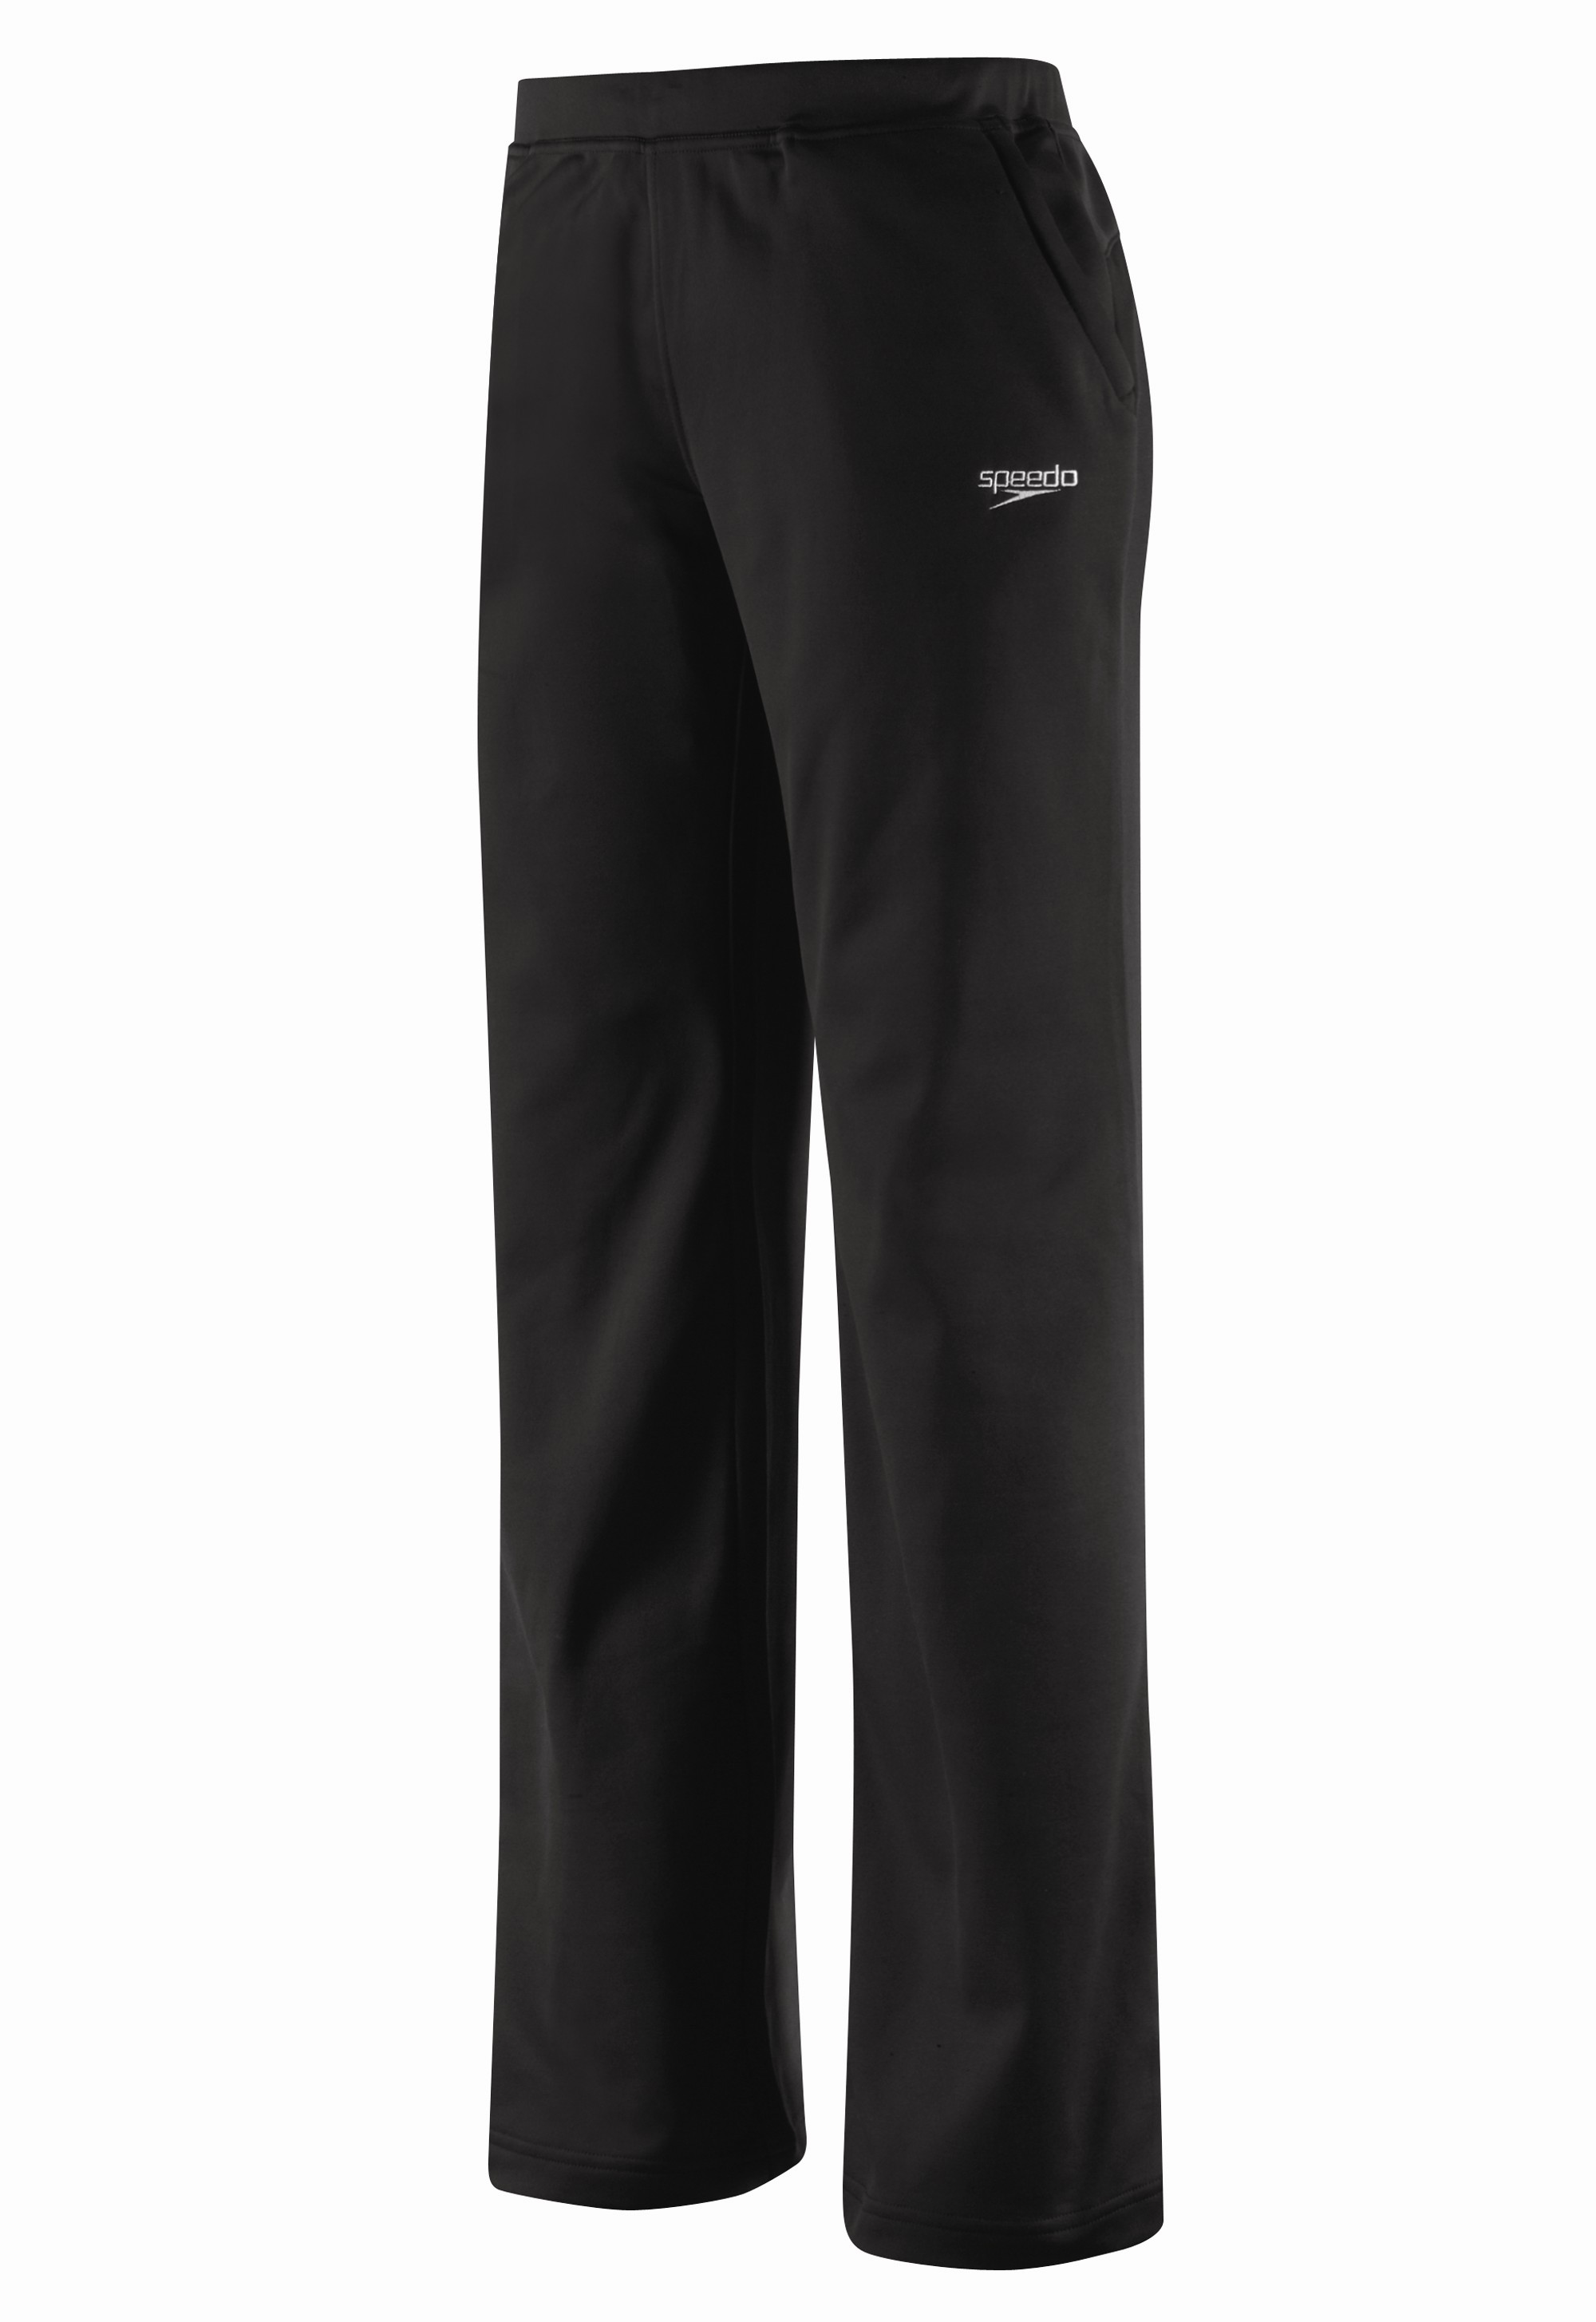 SPEEDO Sonic Warm Up Female Pant